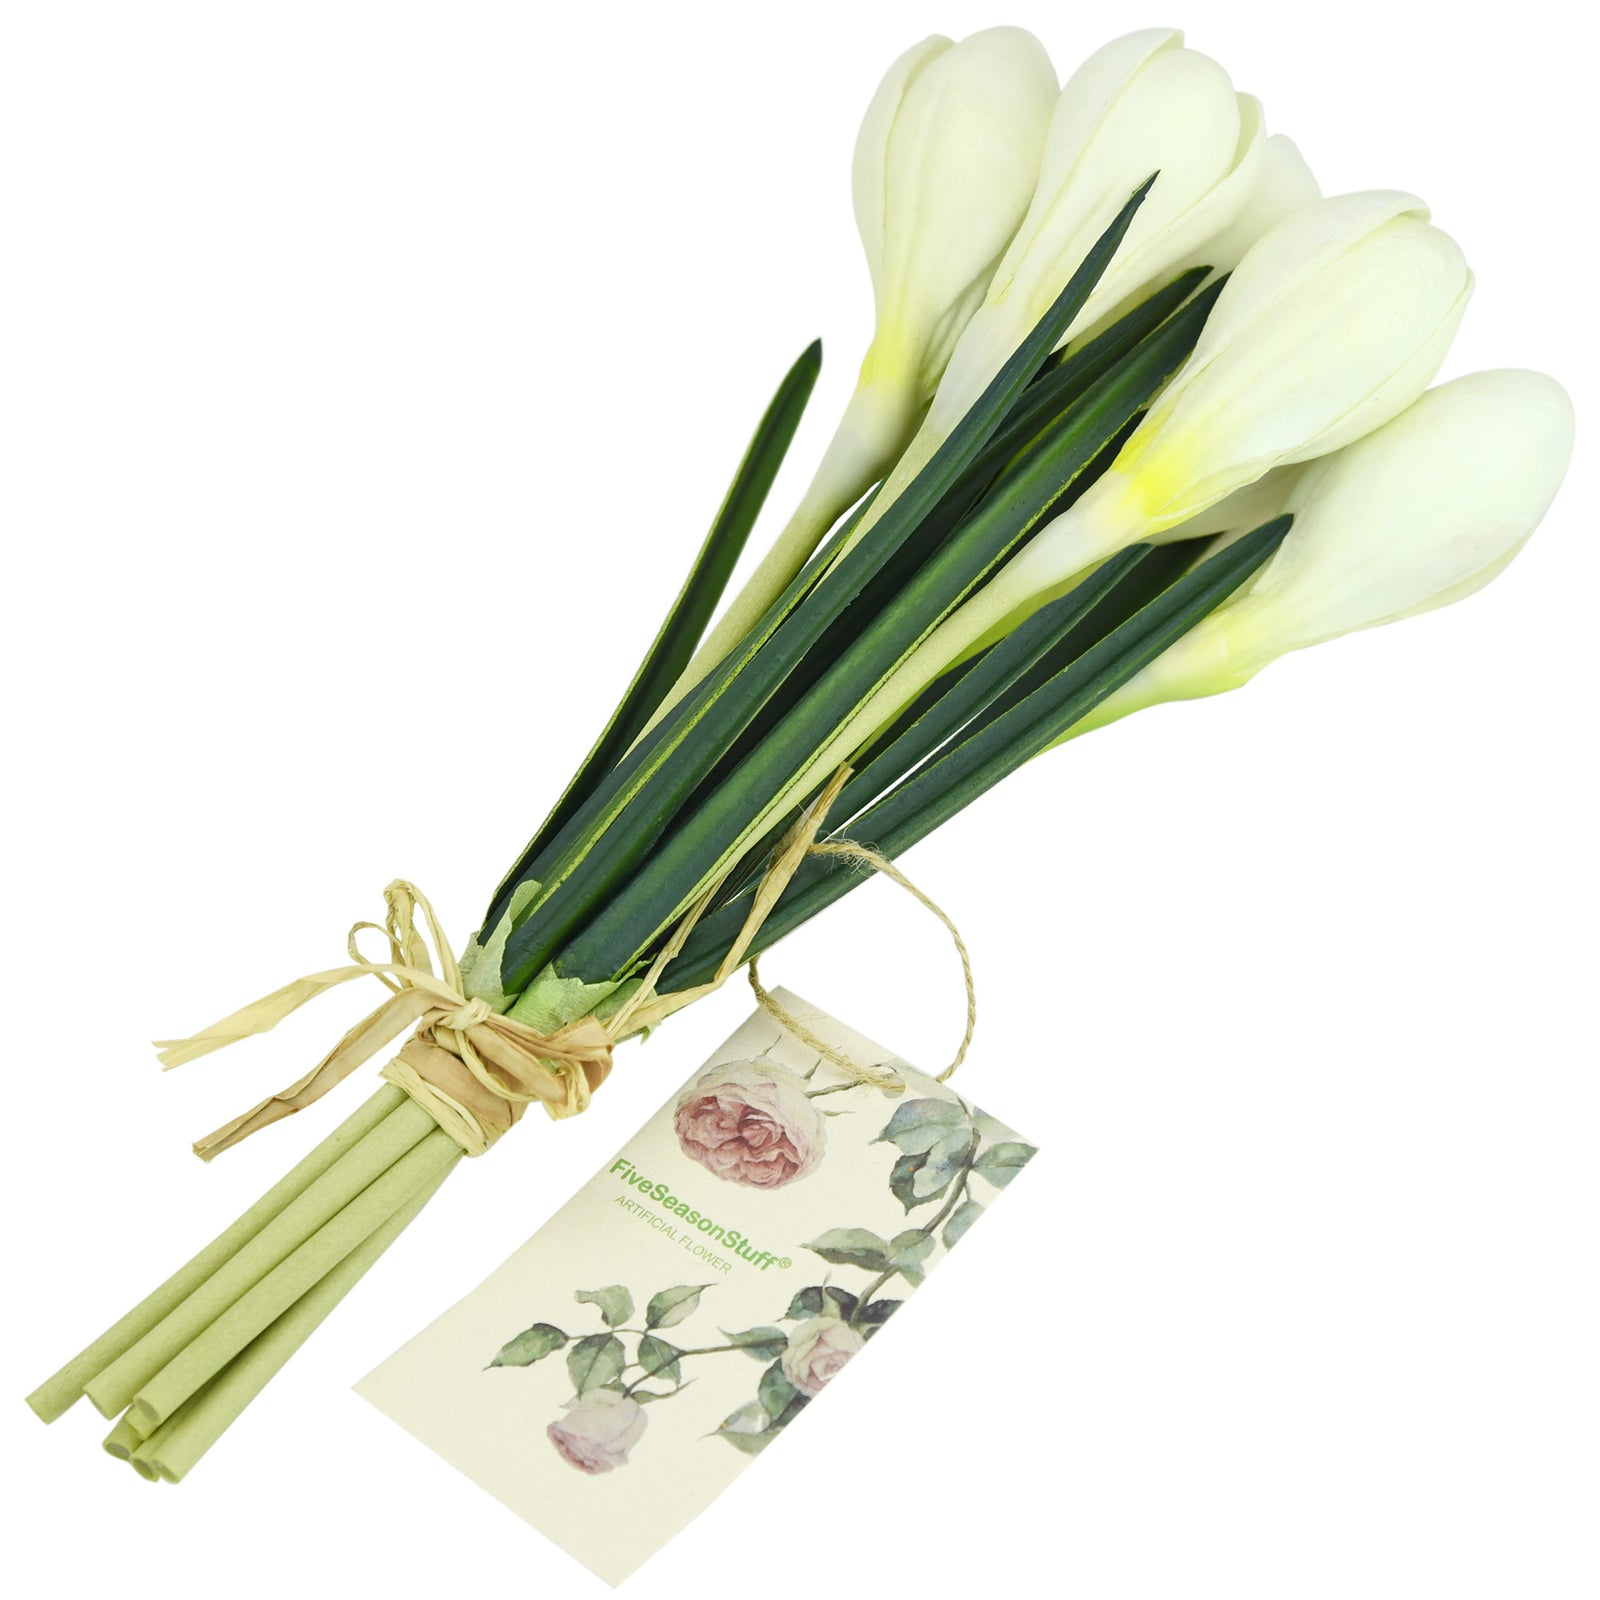 7 Stems (White) Realistic Artificial Saffron Crocus Flowers